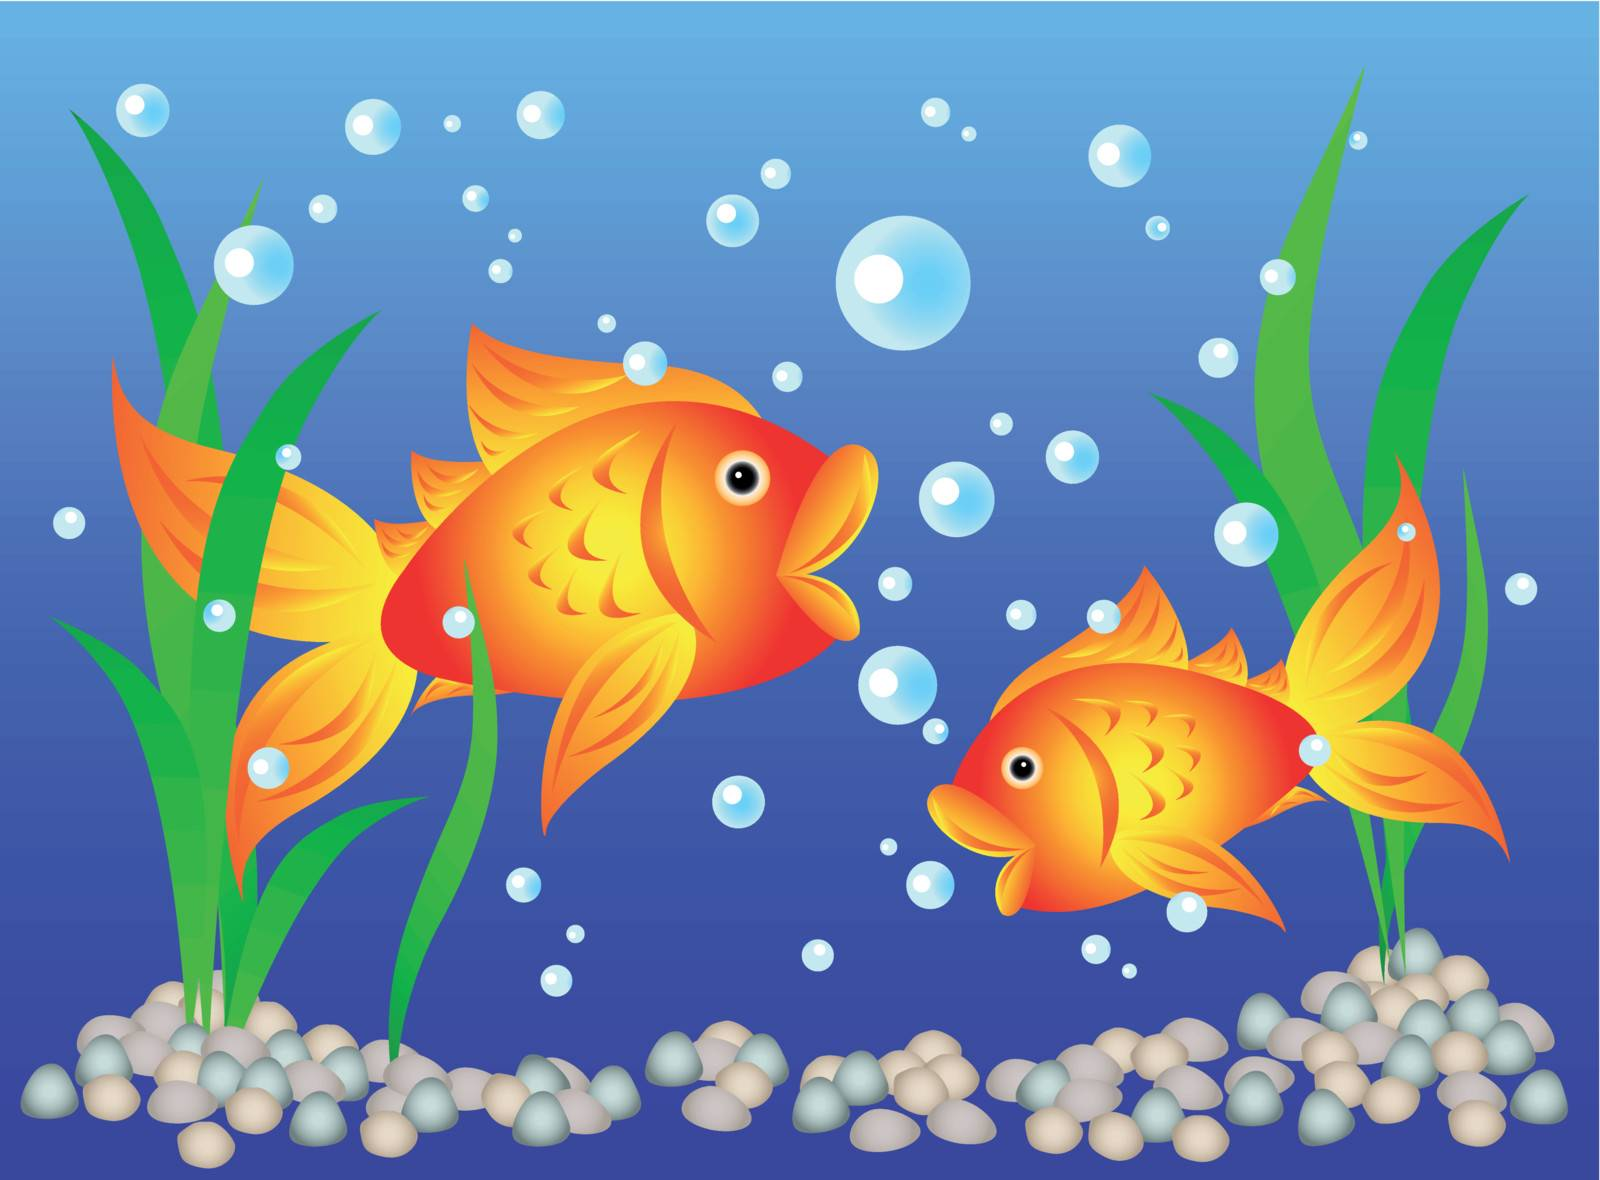 Fun and colorful: goldfish in an aquarium with algae and pebbles.